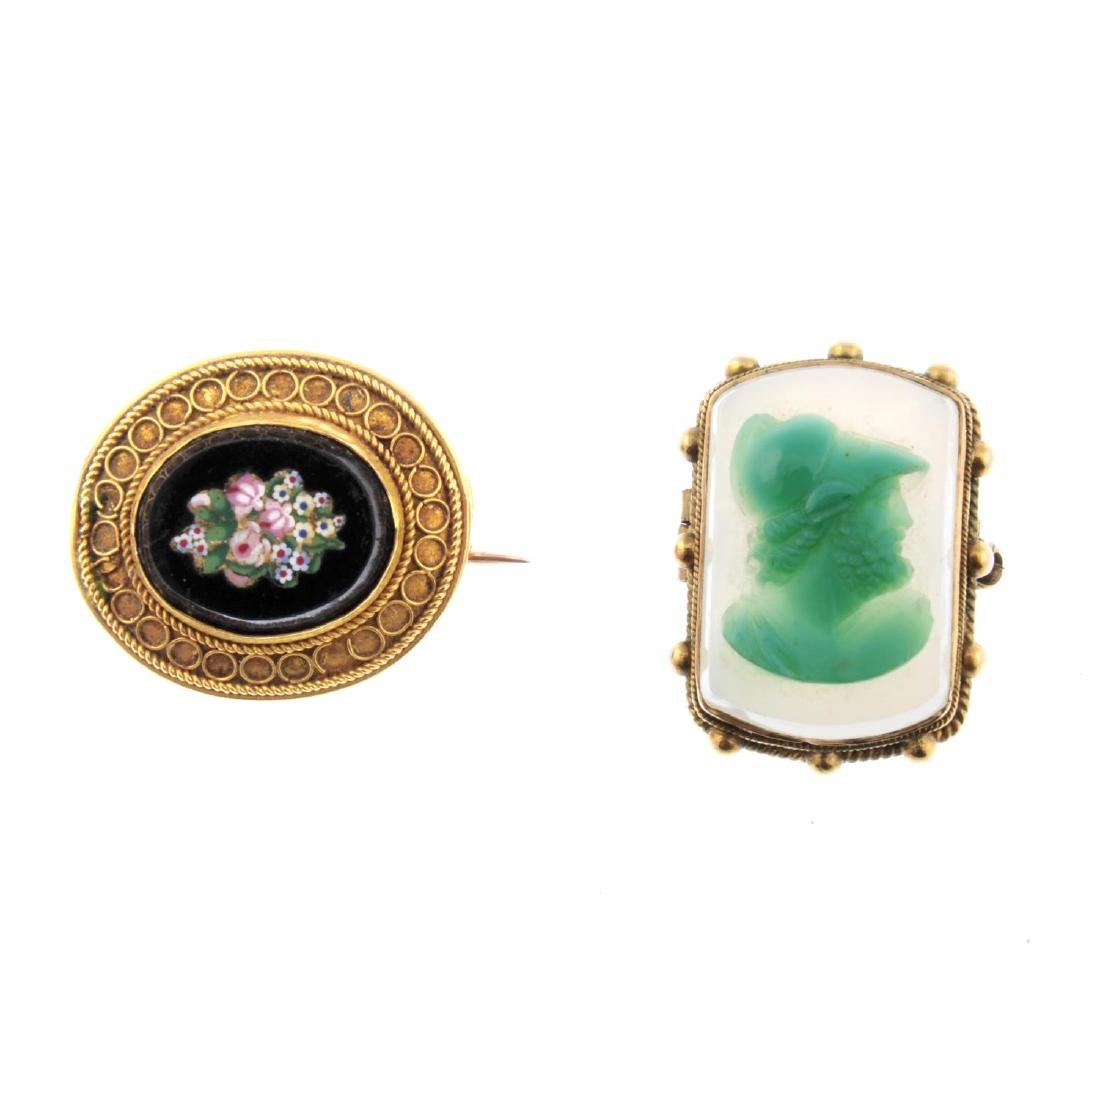 Two late 19th century brooches. To include an oval